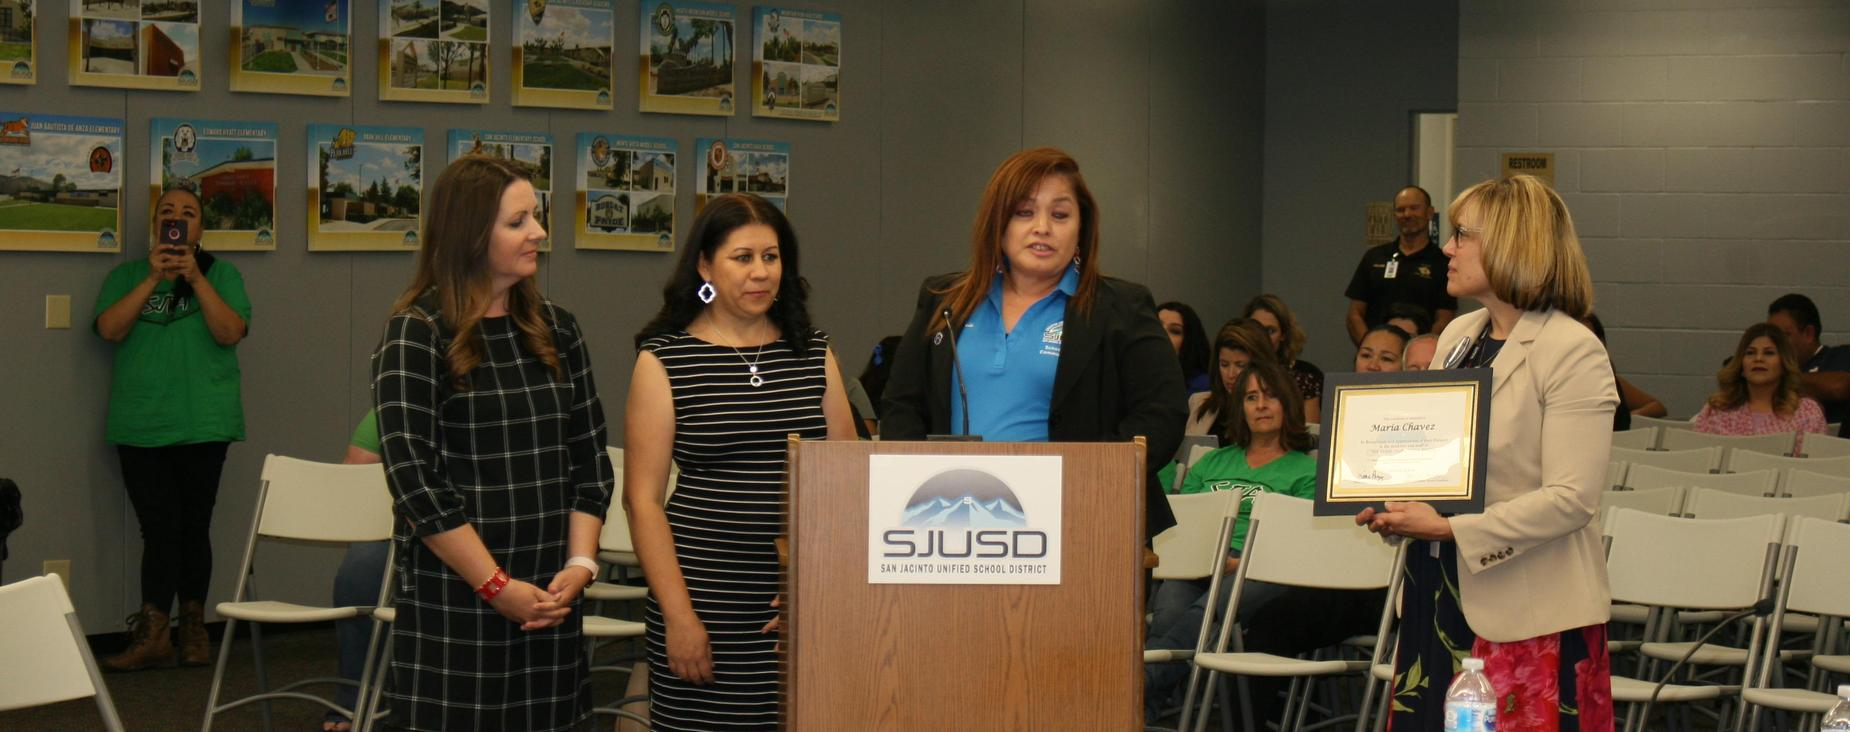 Parent Volunteer Maria Chavez was recognized by DeAnza Elementary School for volunteering not only at their school, but others as well as the SJUSD Parent Center.